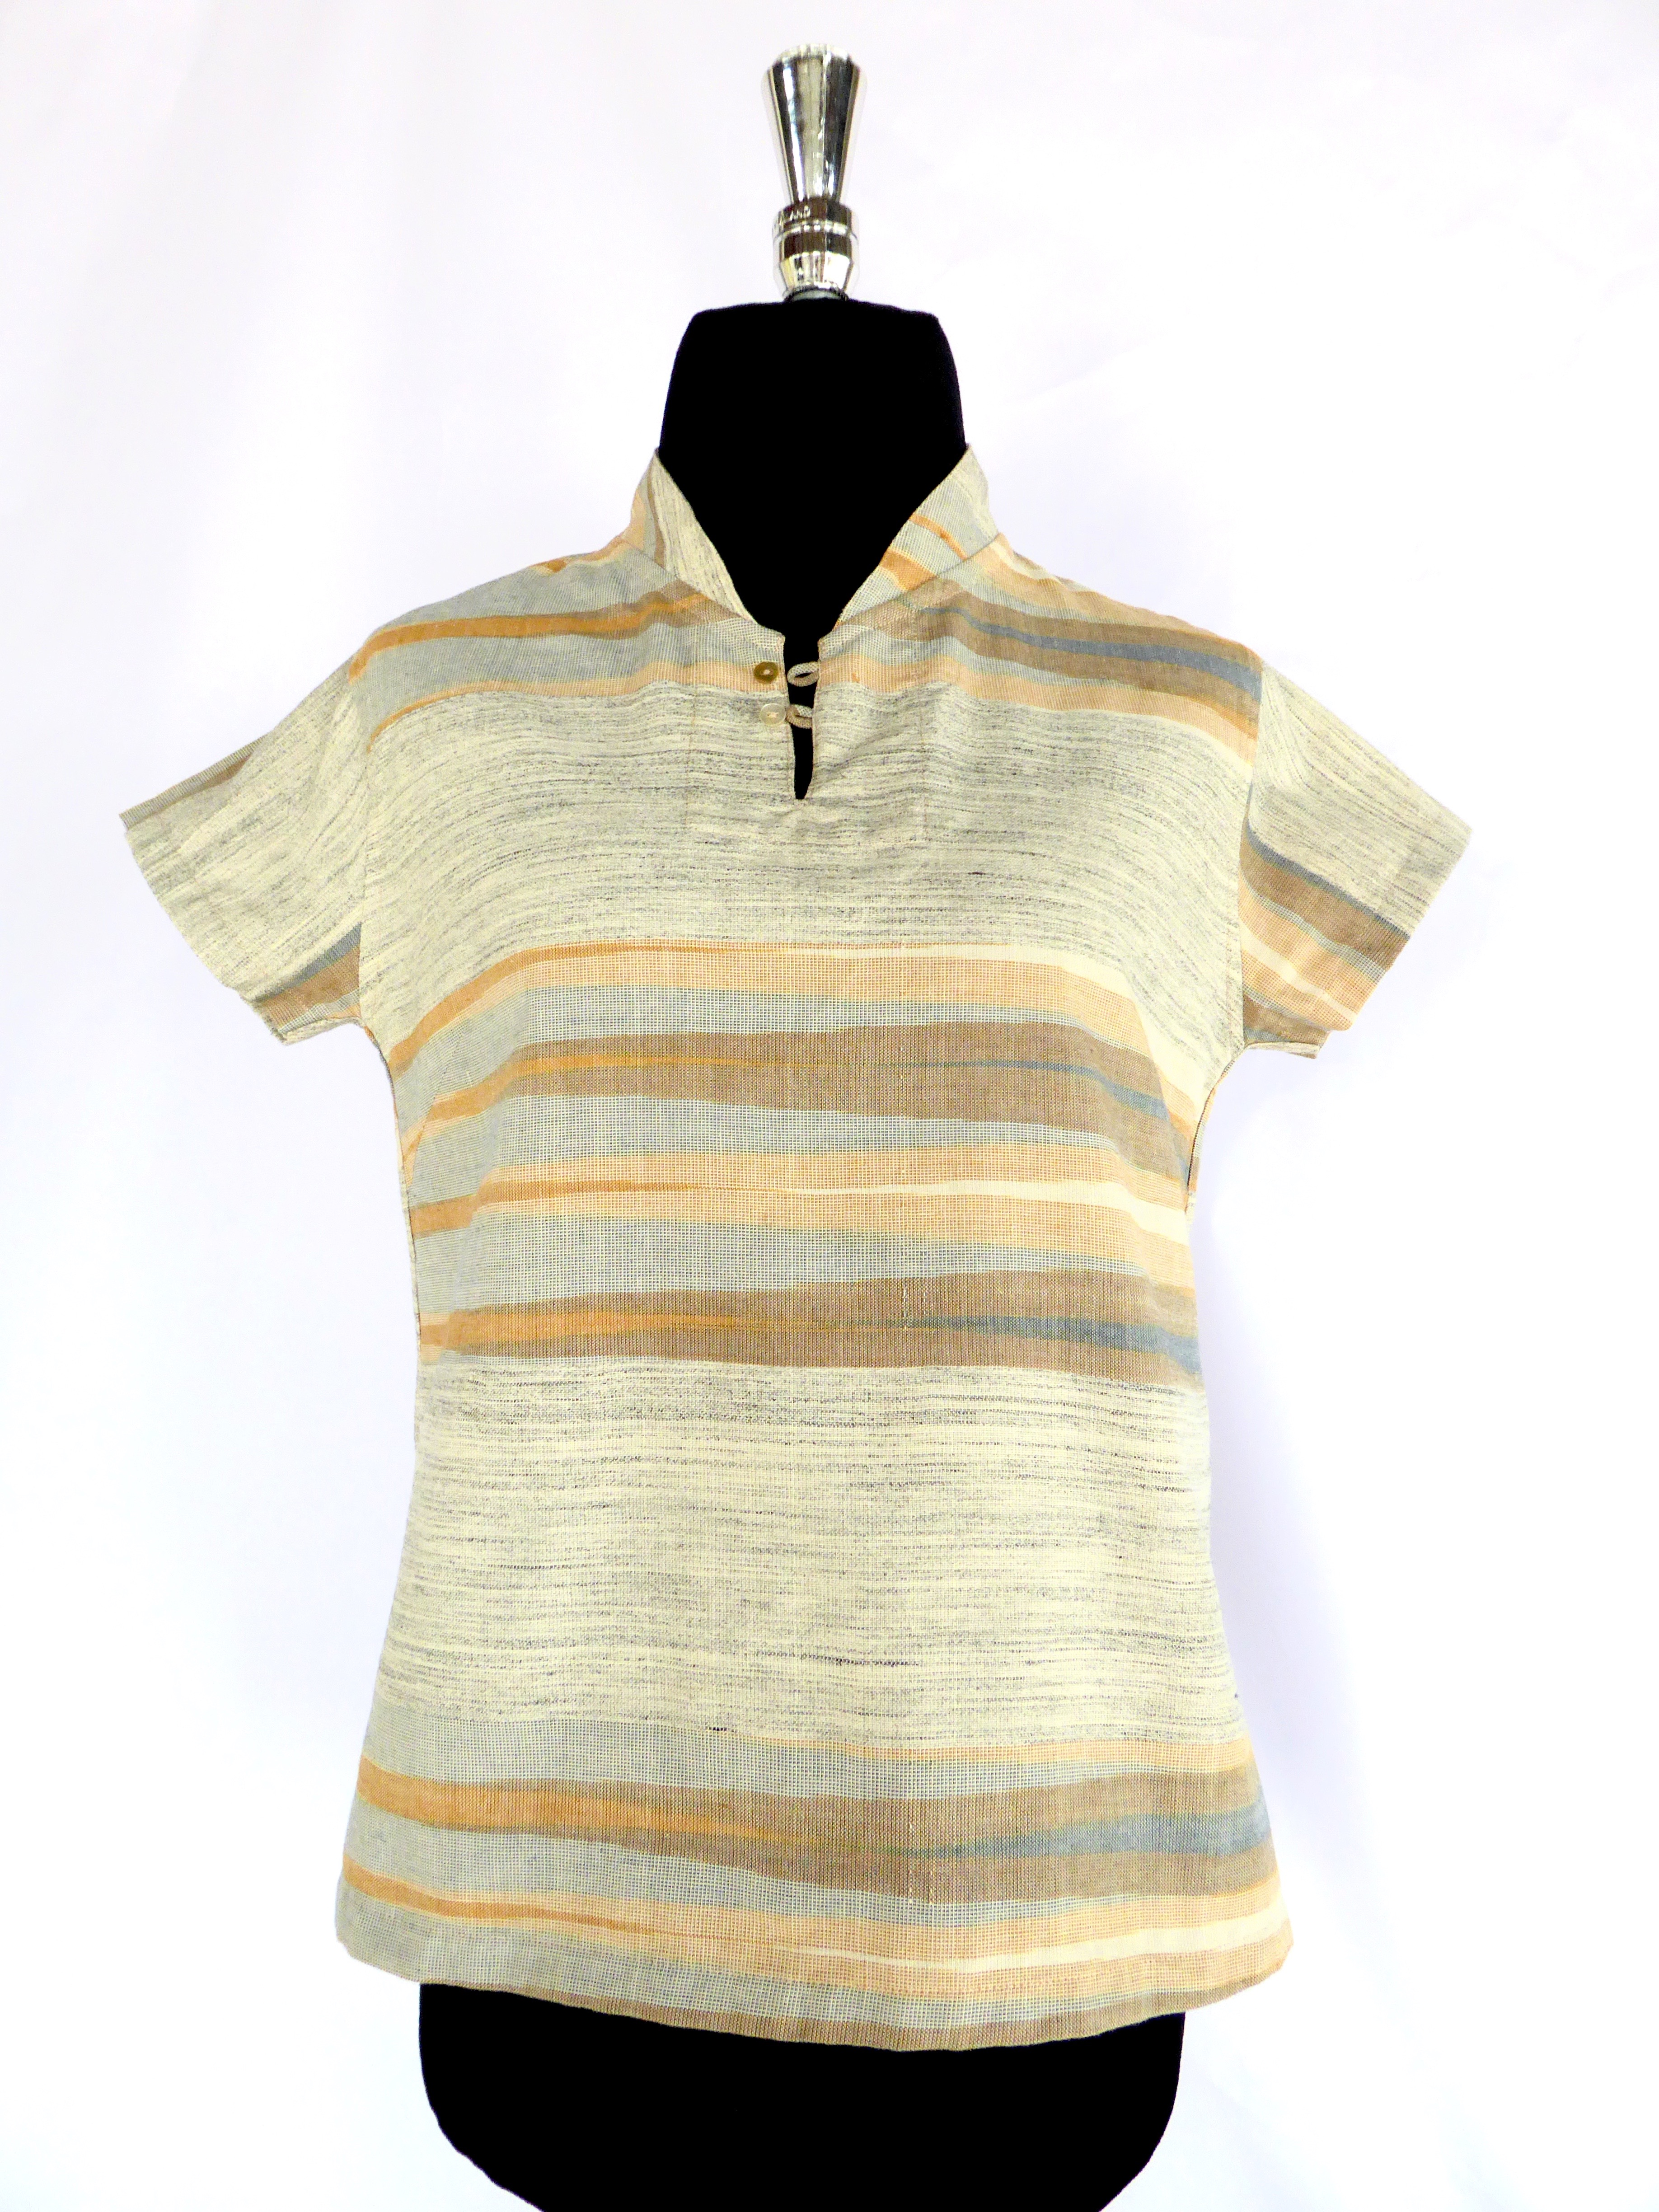 18_T-Shirt_Outfit 6